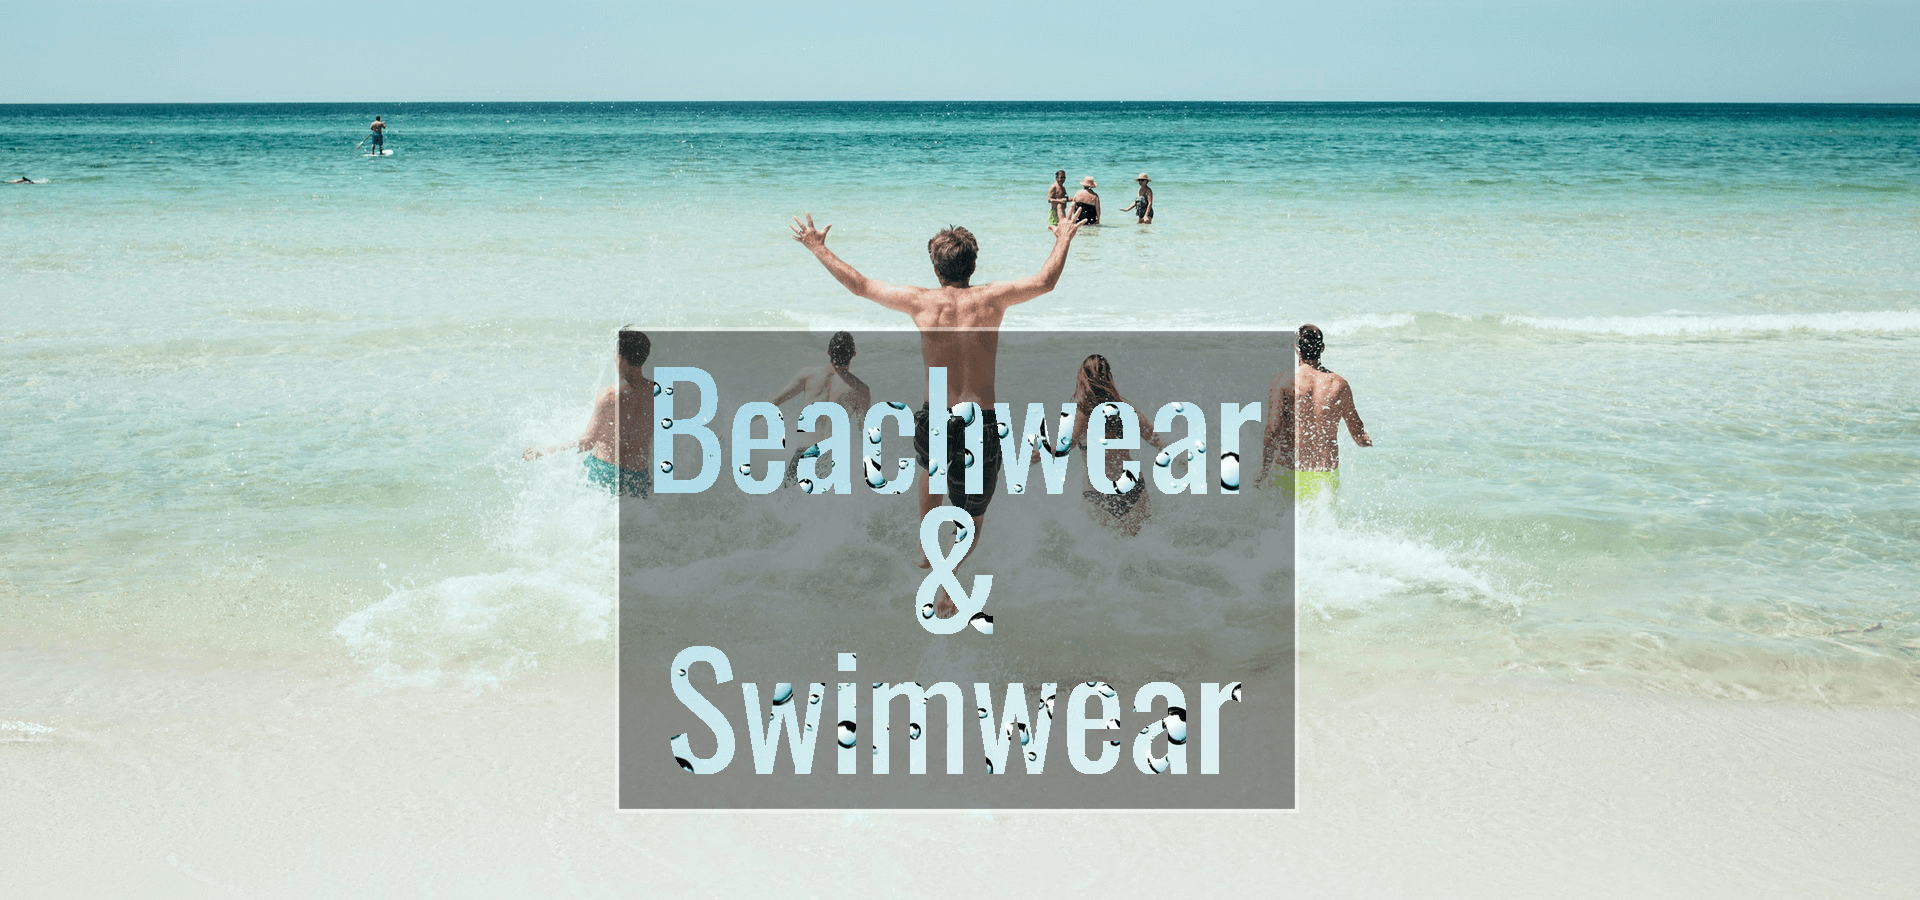 Swimwear & Beachwear banner: links to swimwear and beachwear category